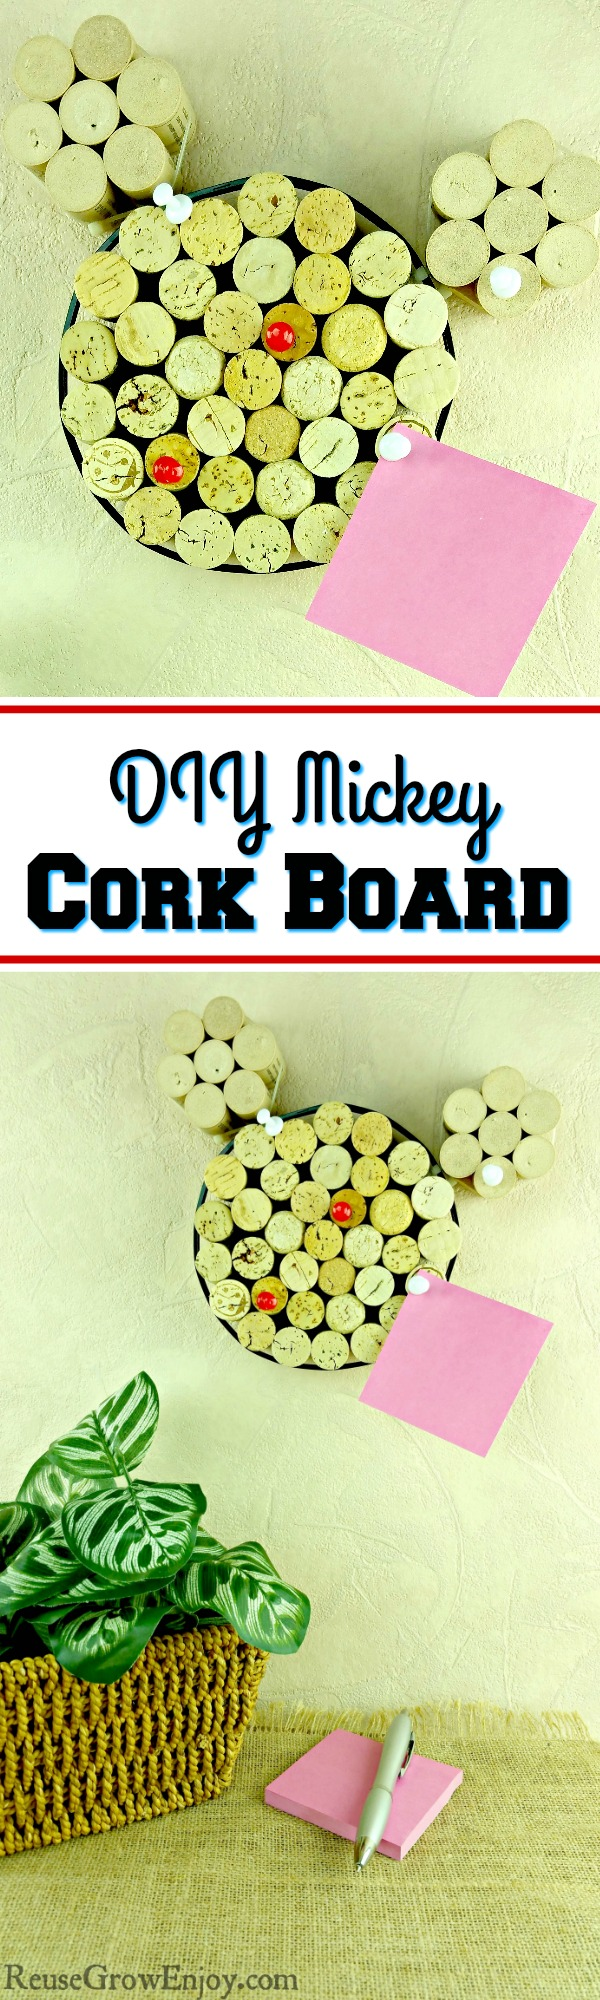 If you like Mickey and have a bunch of corks kicking around, this is the project for you! I will show you how to make this easy DIY Mickey cork board!